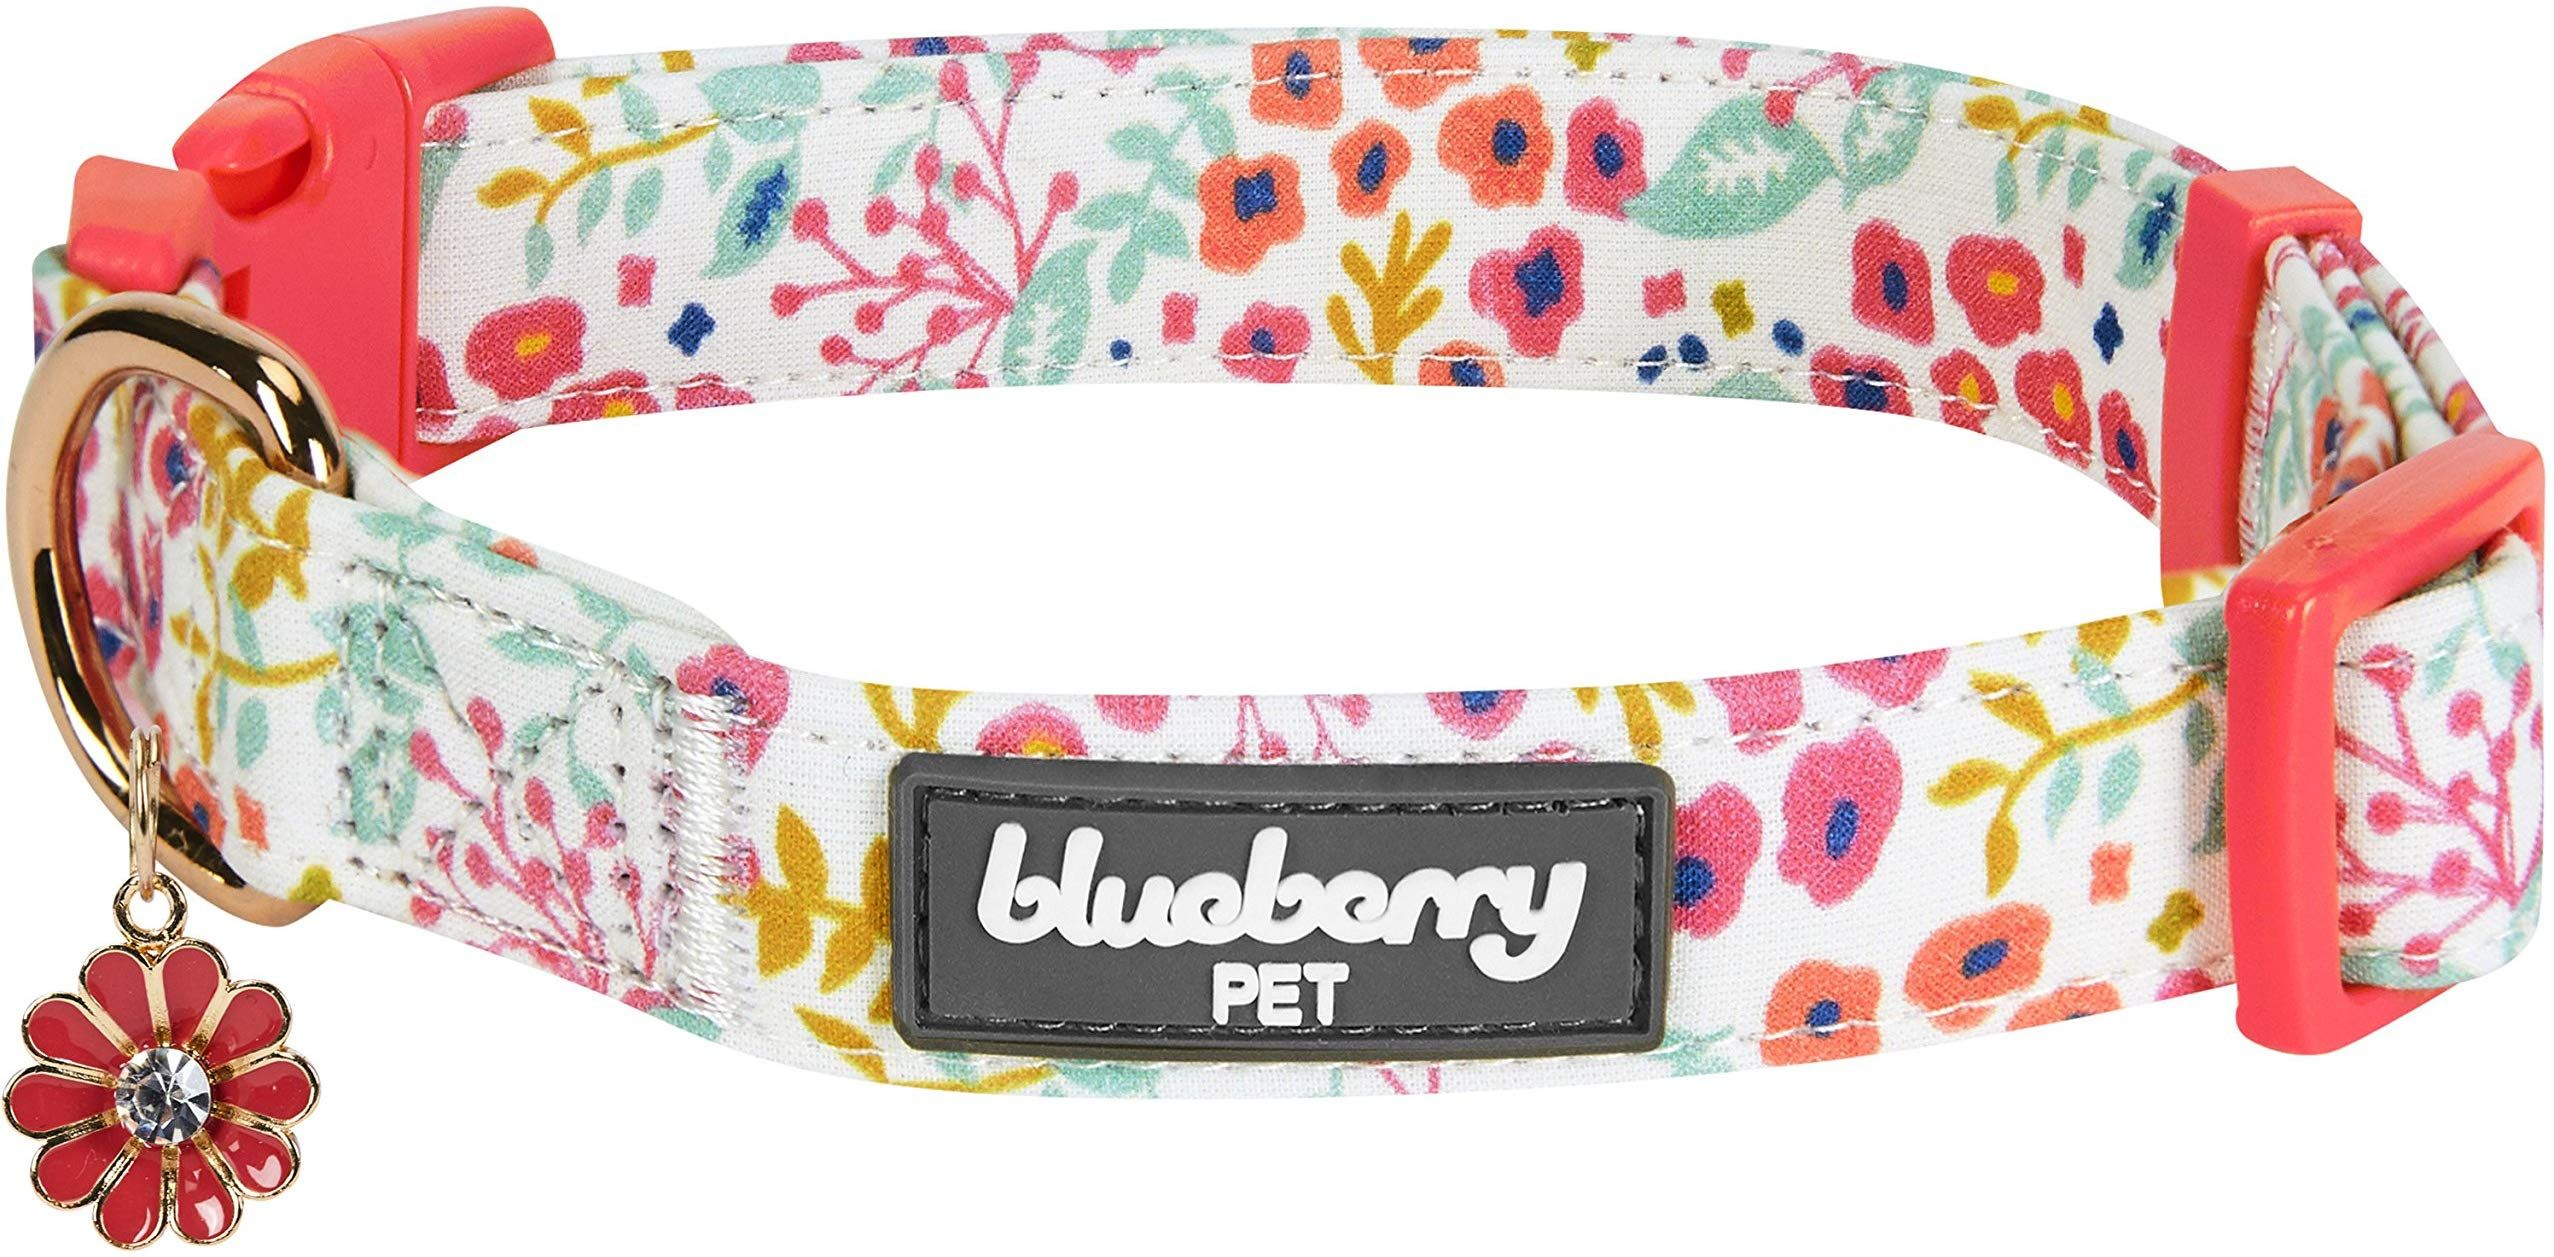 Blueberry Pet 2019 New 6 Patterns Spring Scent Garden Floral Collar Dog Collars Leashes Designer Dog Collars Collar And Leash